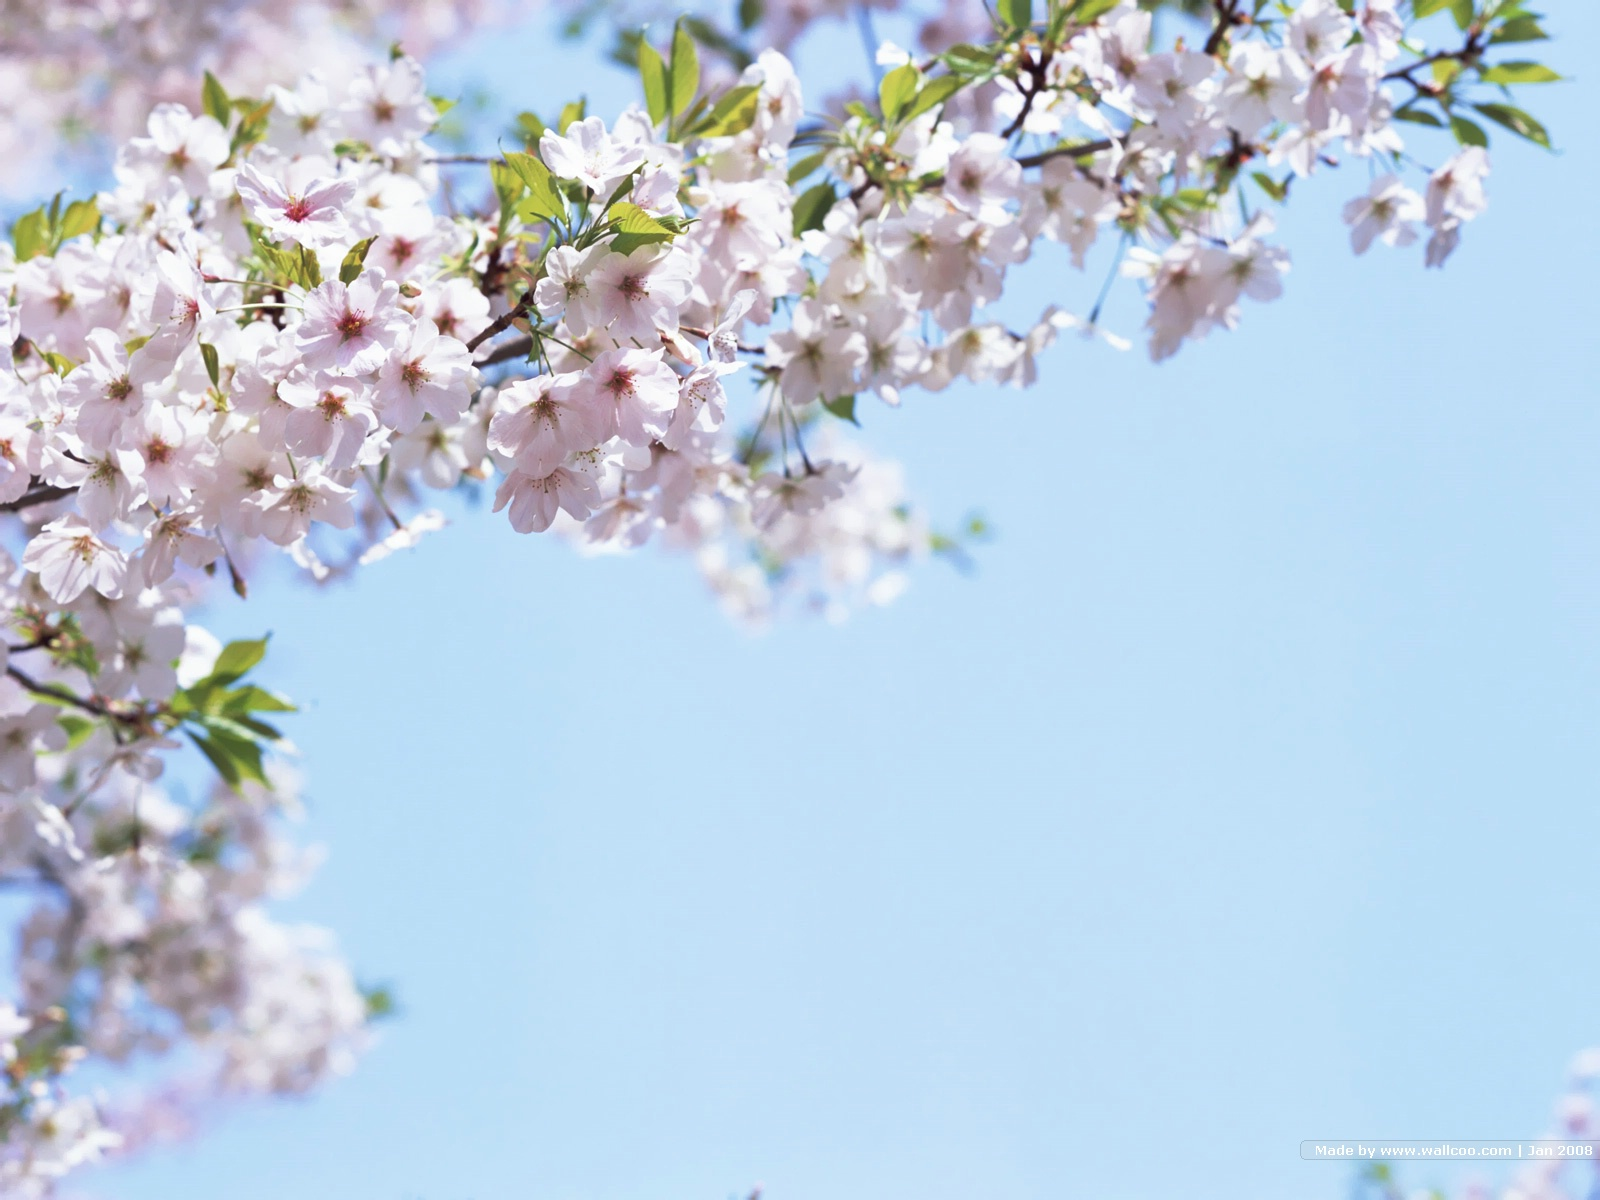 Must see Wallpaper High Resolution Cherry Blossom - Japanese_Cherry_Blossom_wallpapers_GA041  Trends_28143.jpg